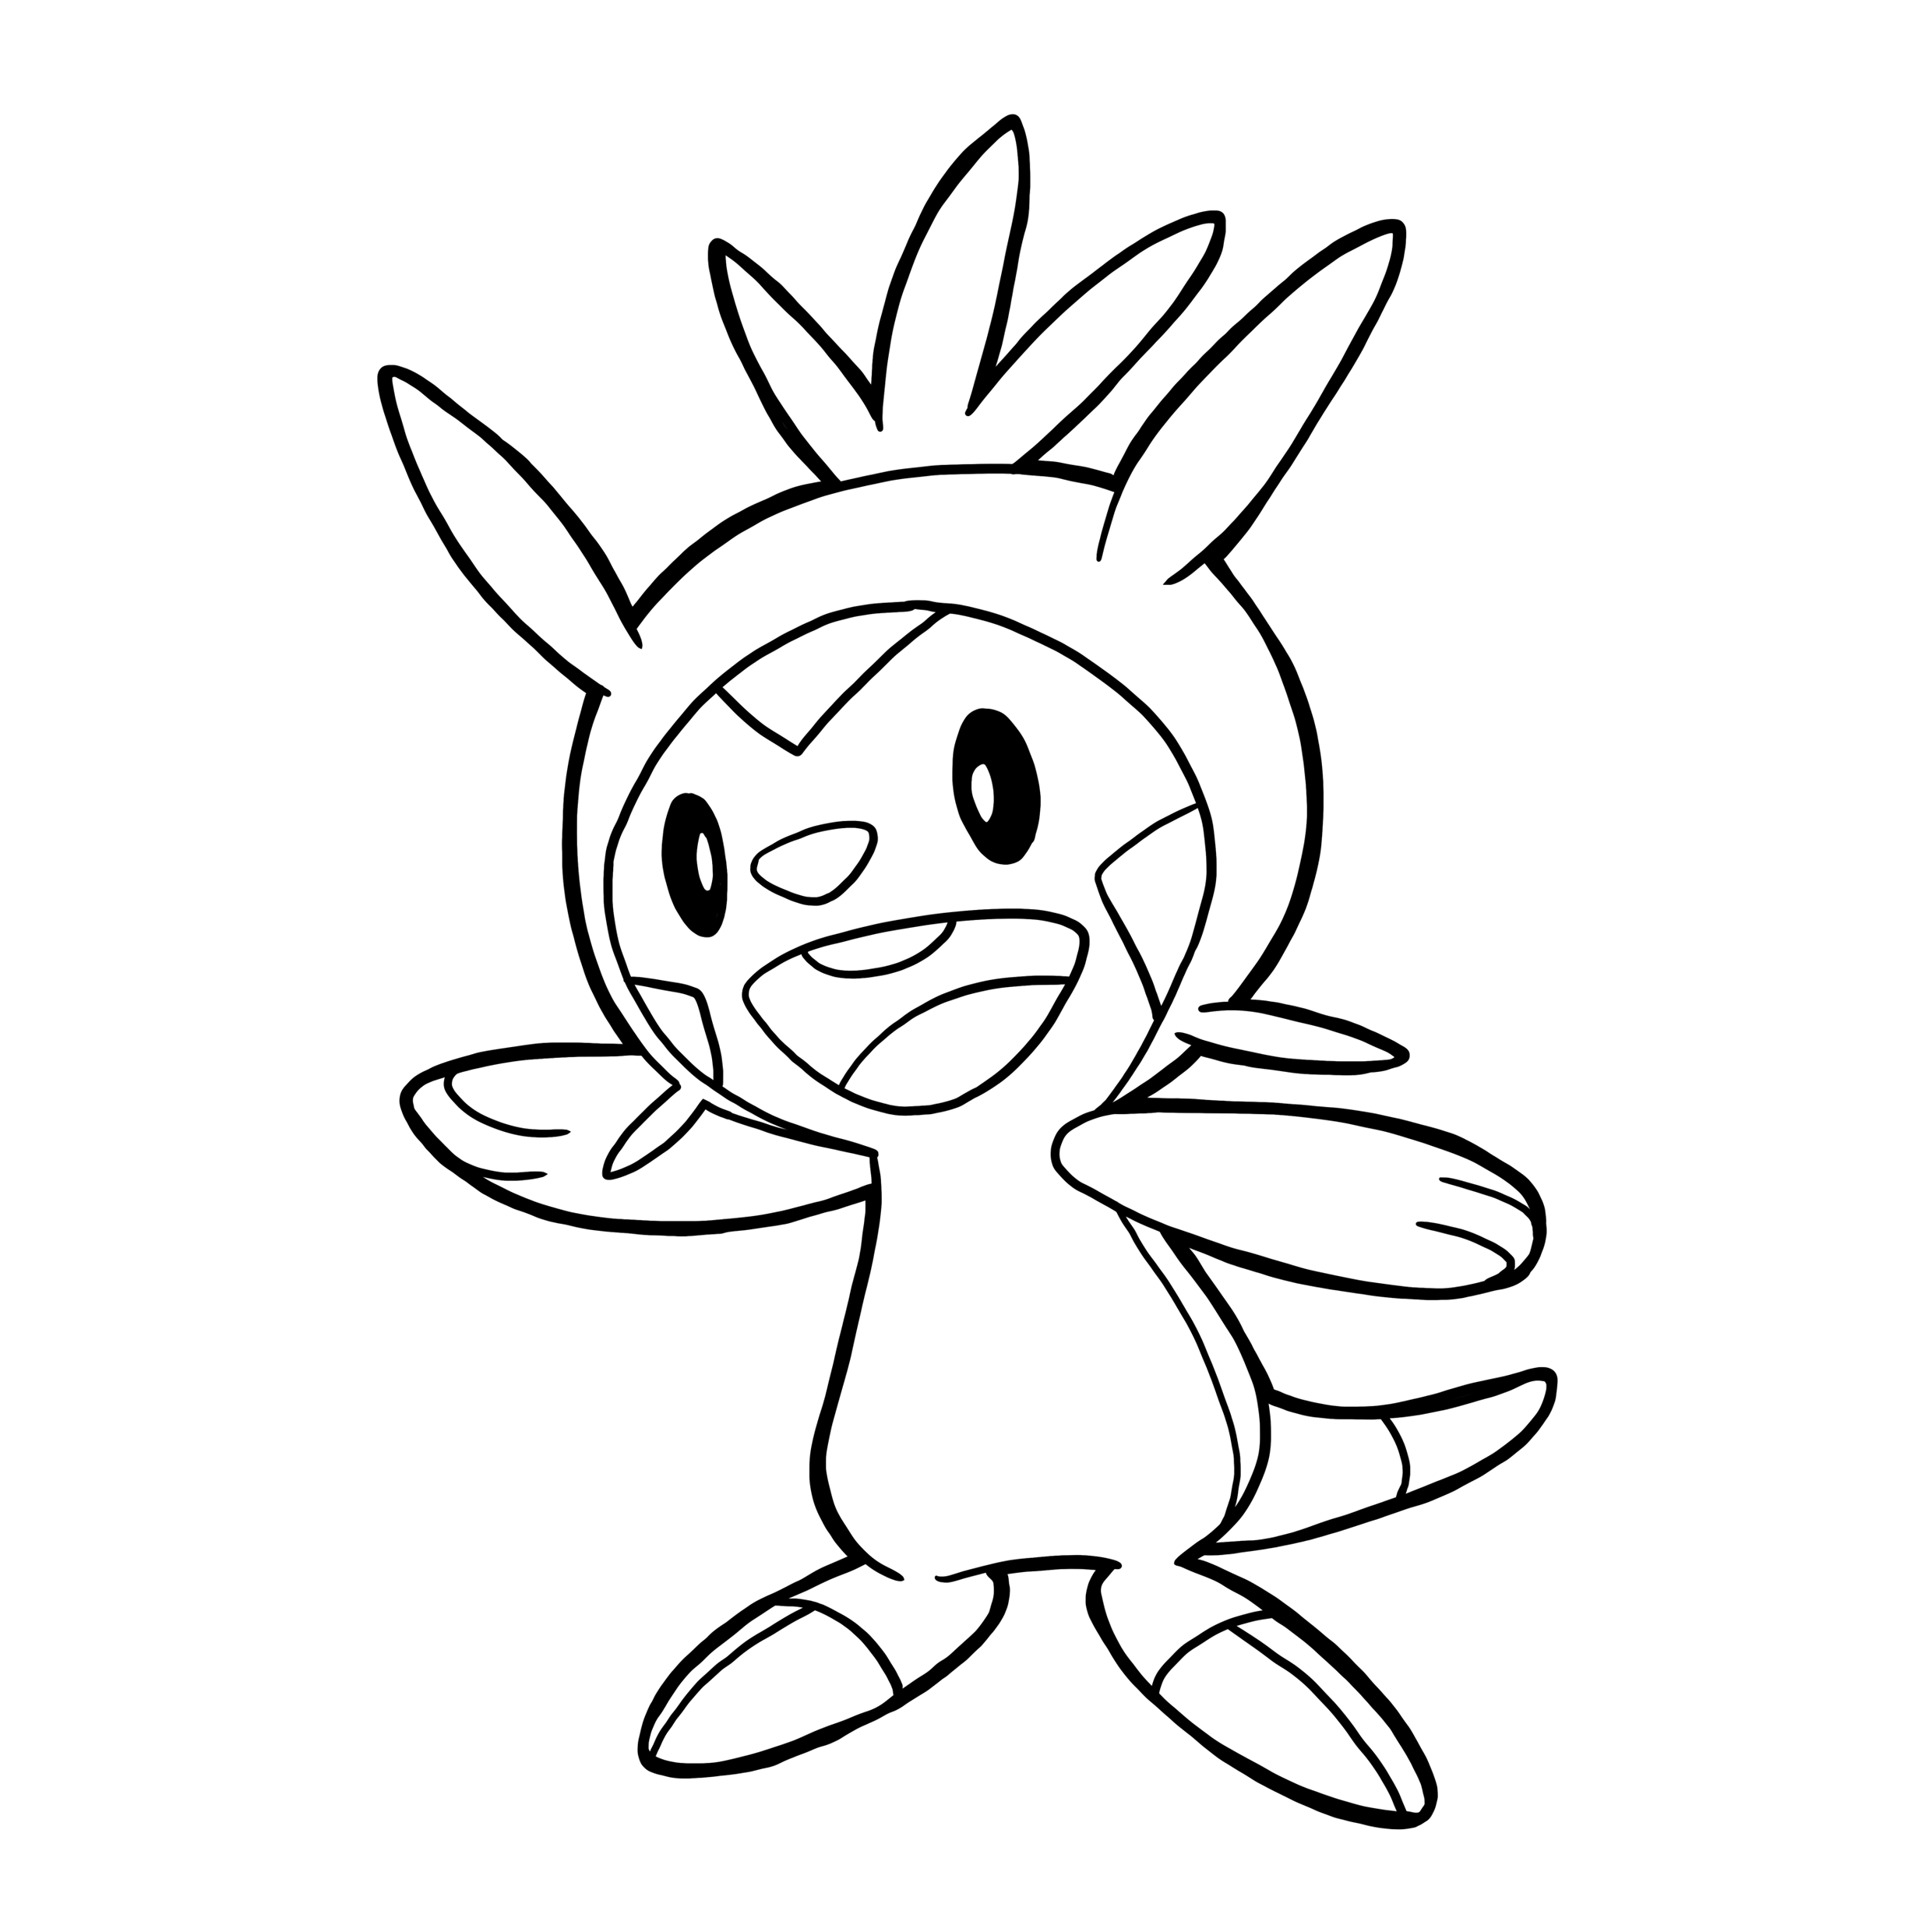 Amazing Froakie Evolution Outline By Thestaplerator On